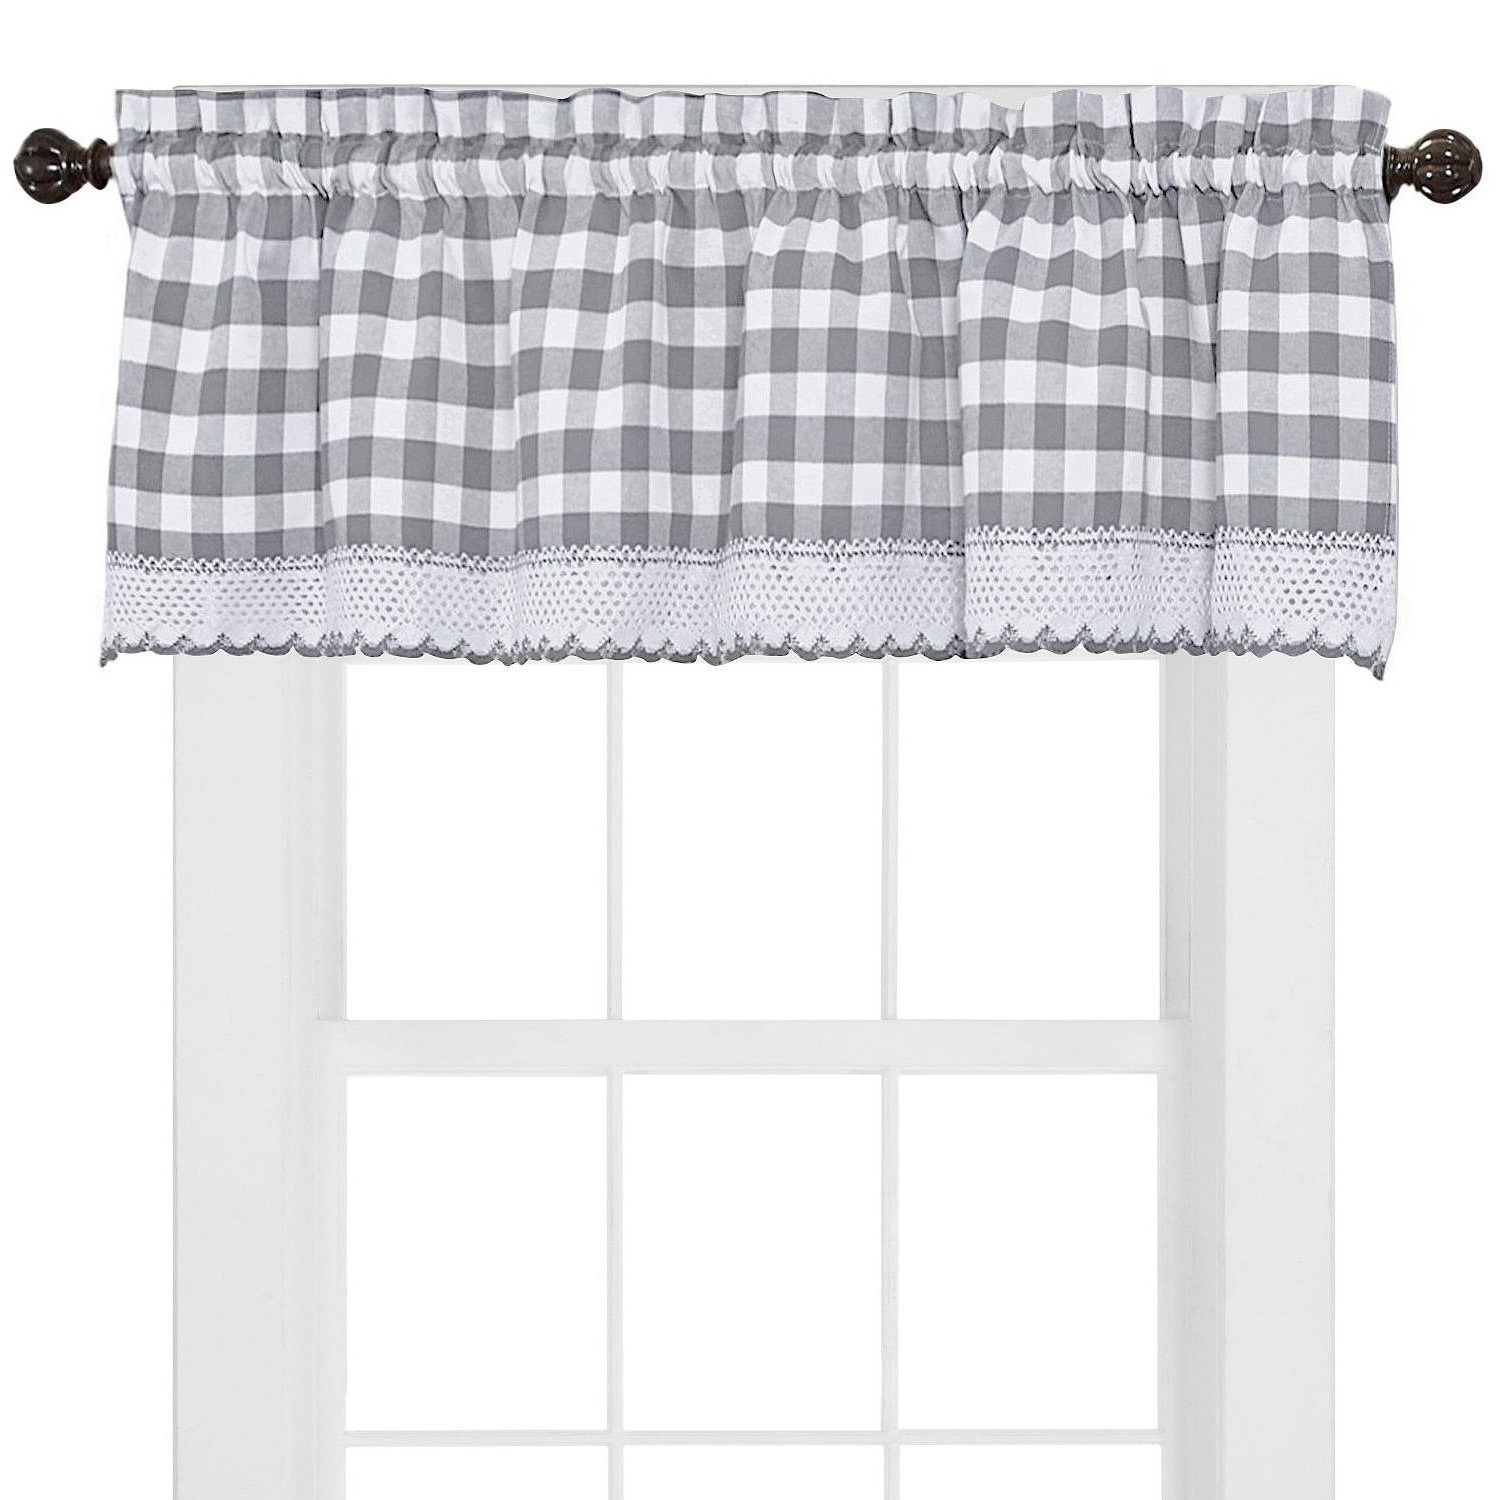 Most Popular Buffalo Check Cotton Blend Grey Kitchen Curtain Valance In Cumberland Tier Pair Rod Pocket Cotton Buffalo Check Kitchen Curtains (View 16 of 20)